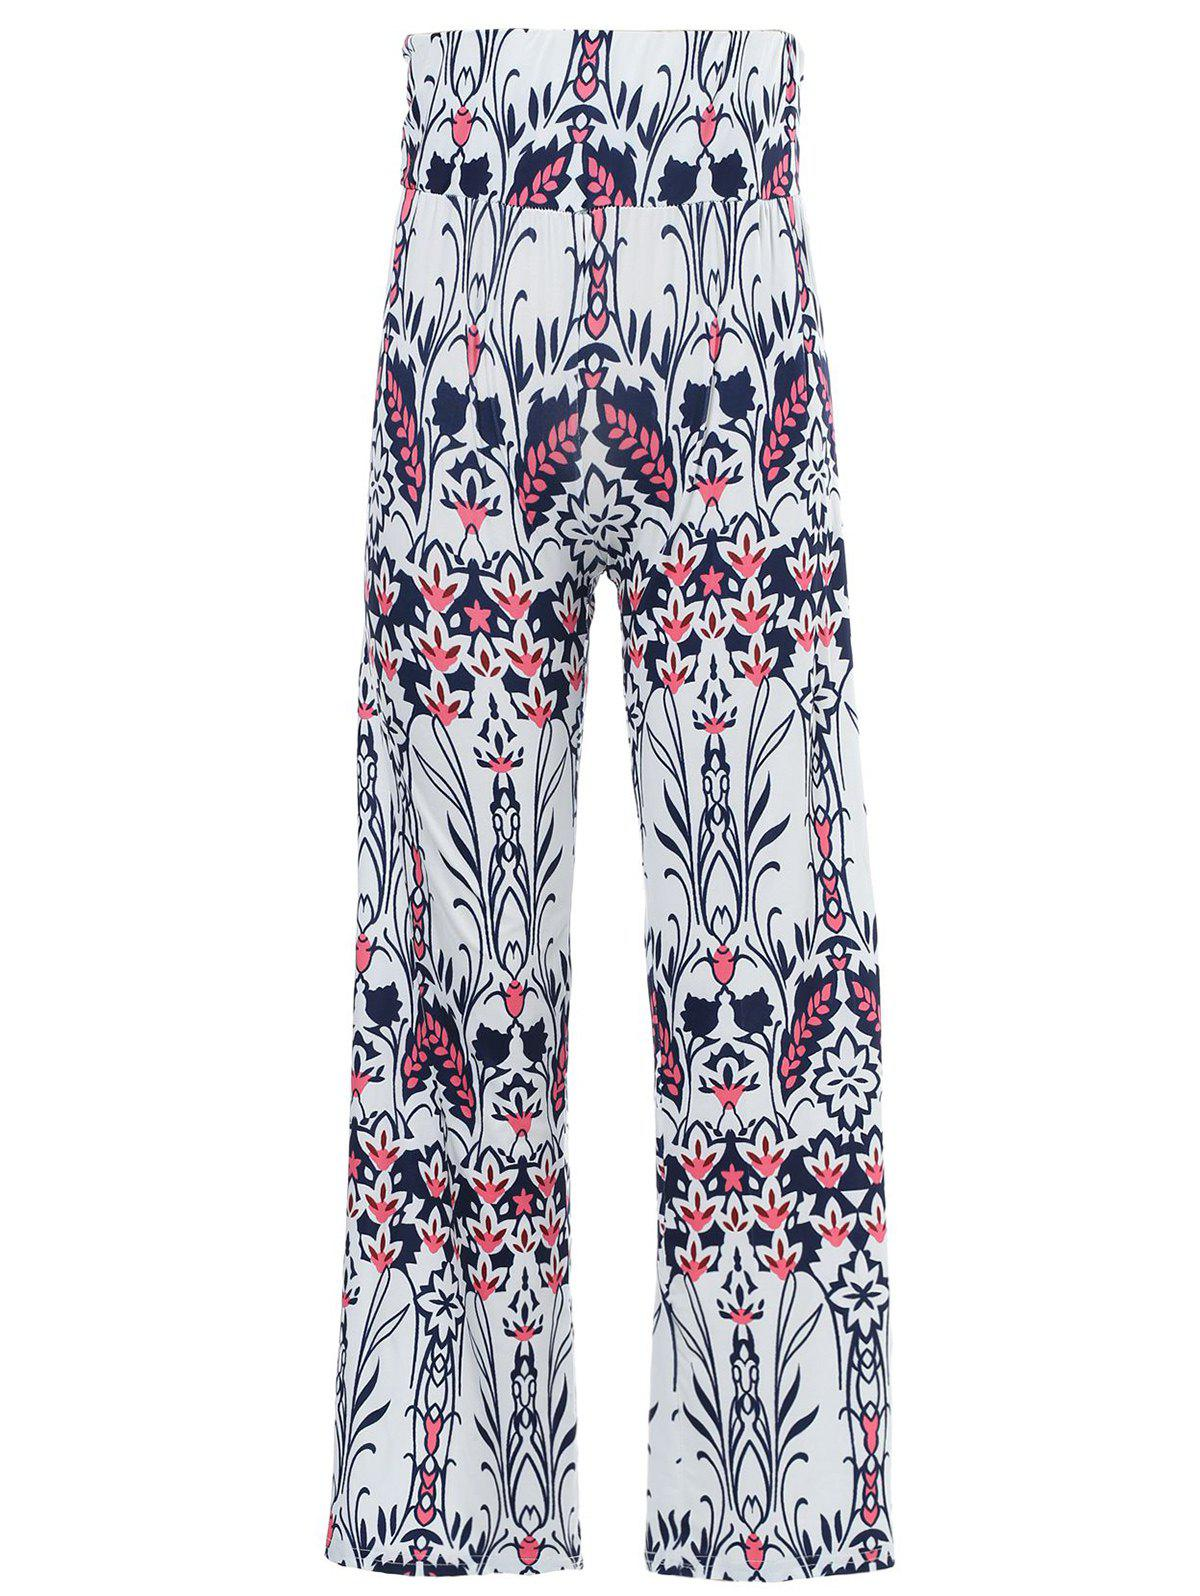 Fashionable Mid-Waisted Loose-Fitting Floral Print Women's Exumas Pants - WHITE L